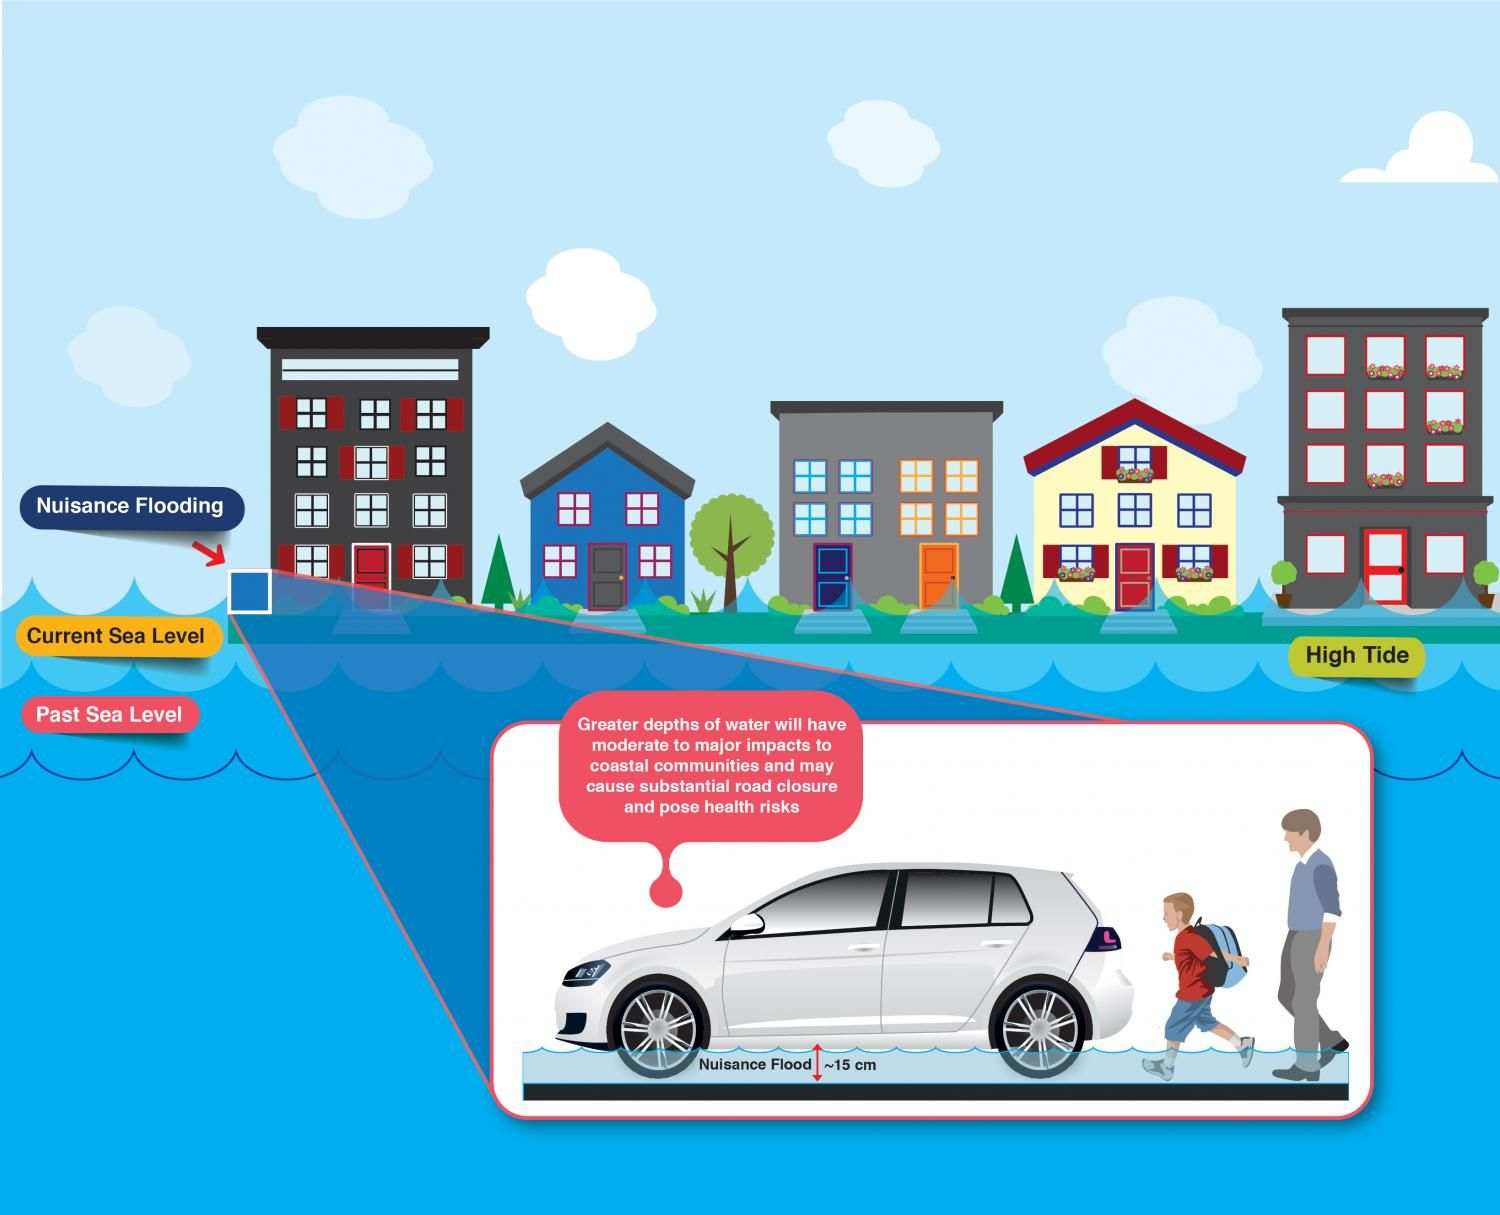 Over time, nuisance flooding can cost more than extreme, infrequent events. In Washington, D.C., for instance, the number of hours of nuisance flooding per year has grown from 19 between 1930 and 1970 to 94 over the last two decades. Projections suggest that there could be as many as 700 hours of nuisance flooding per year by 2050. The UCI researchers found similar potential impacts in four other American cities: Miami, New York, Seattle and San Francisco.